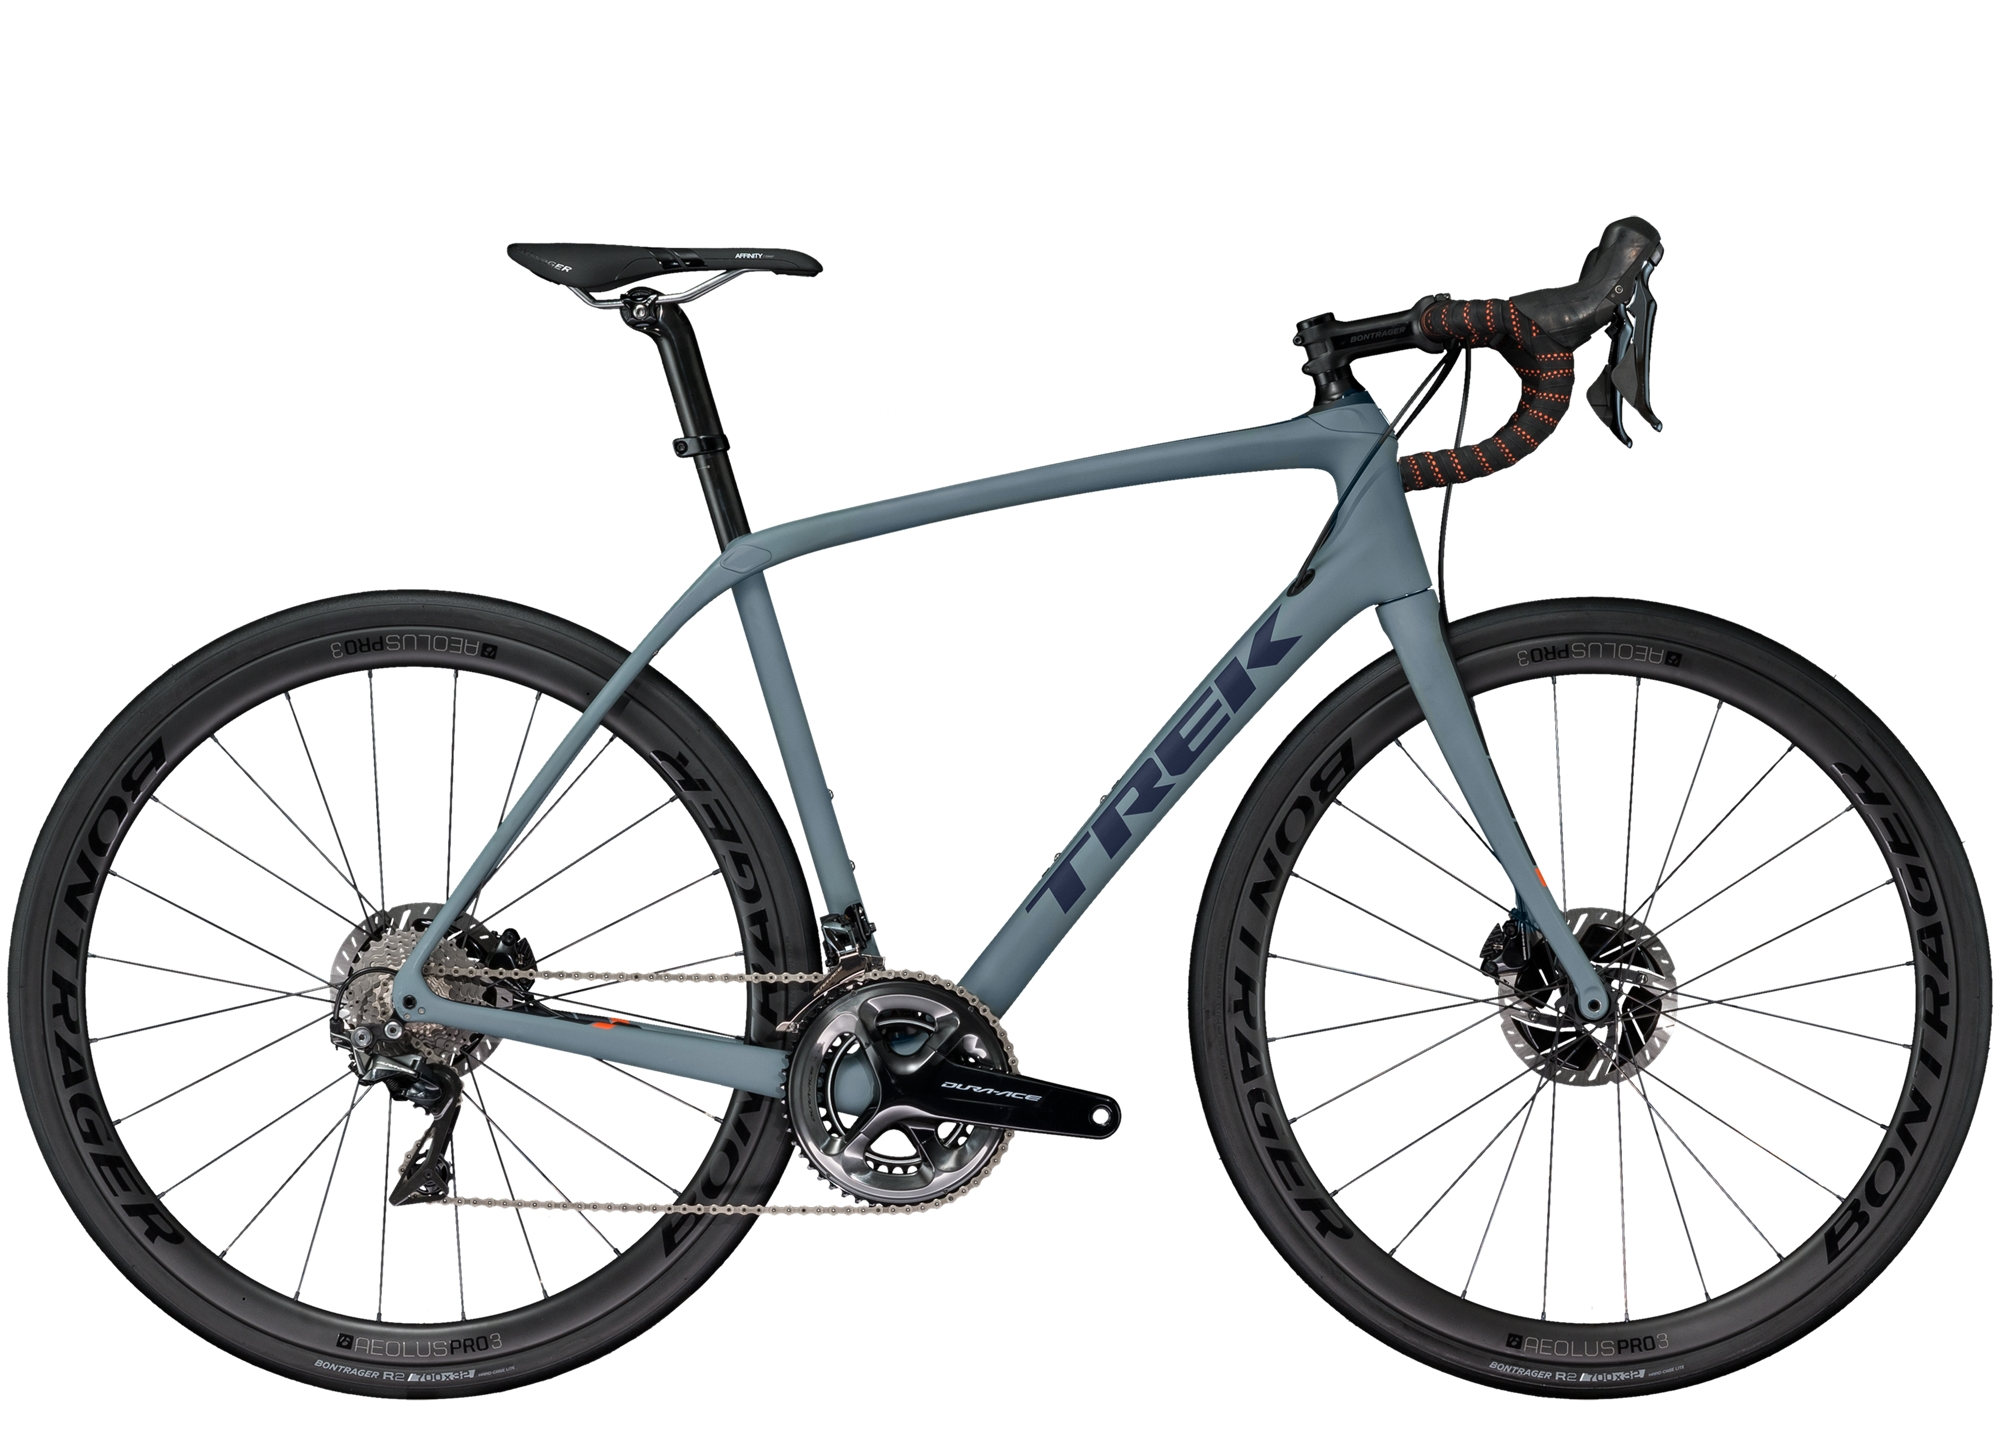 https://trek.scene7.com/is/image/TrekBicycleProducts/1450000_2018_B_1_Domane_SL_8_Disc?wid=2000